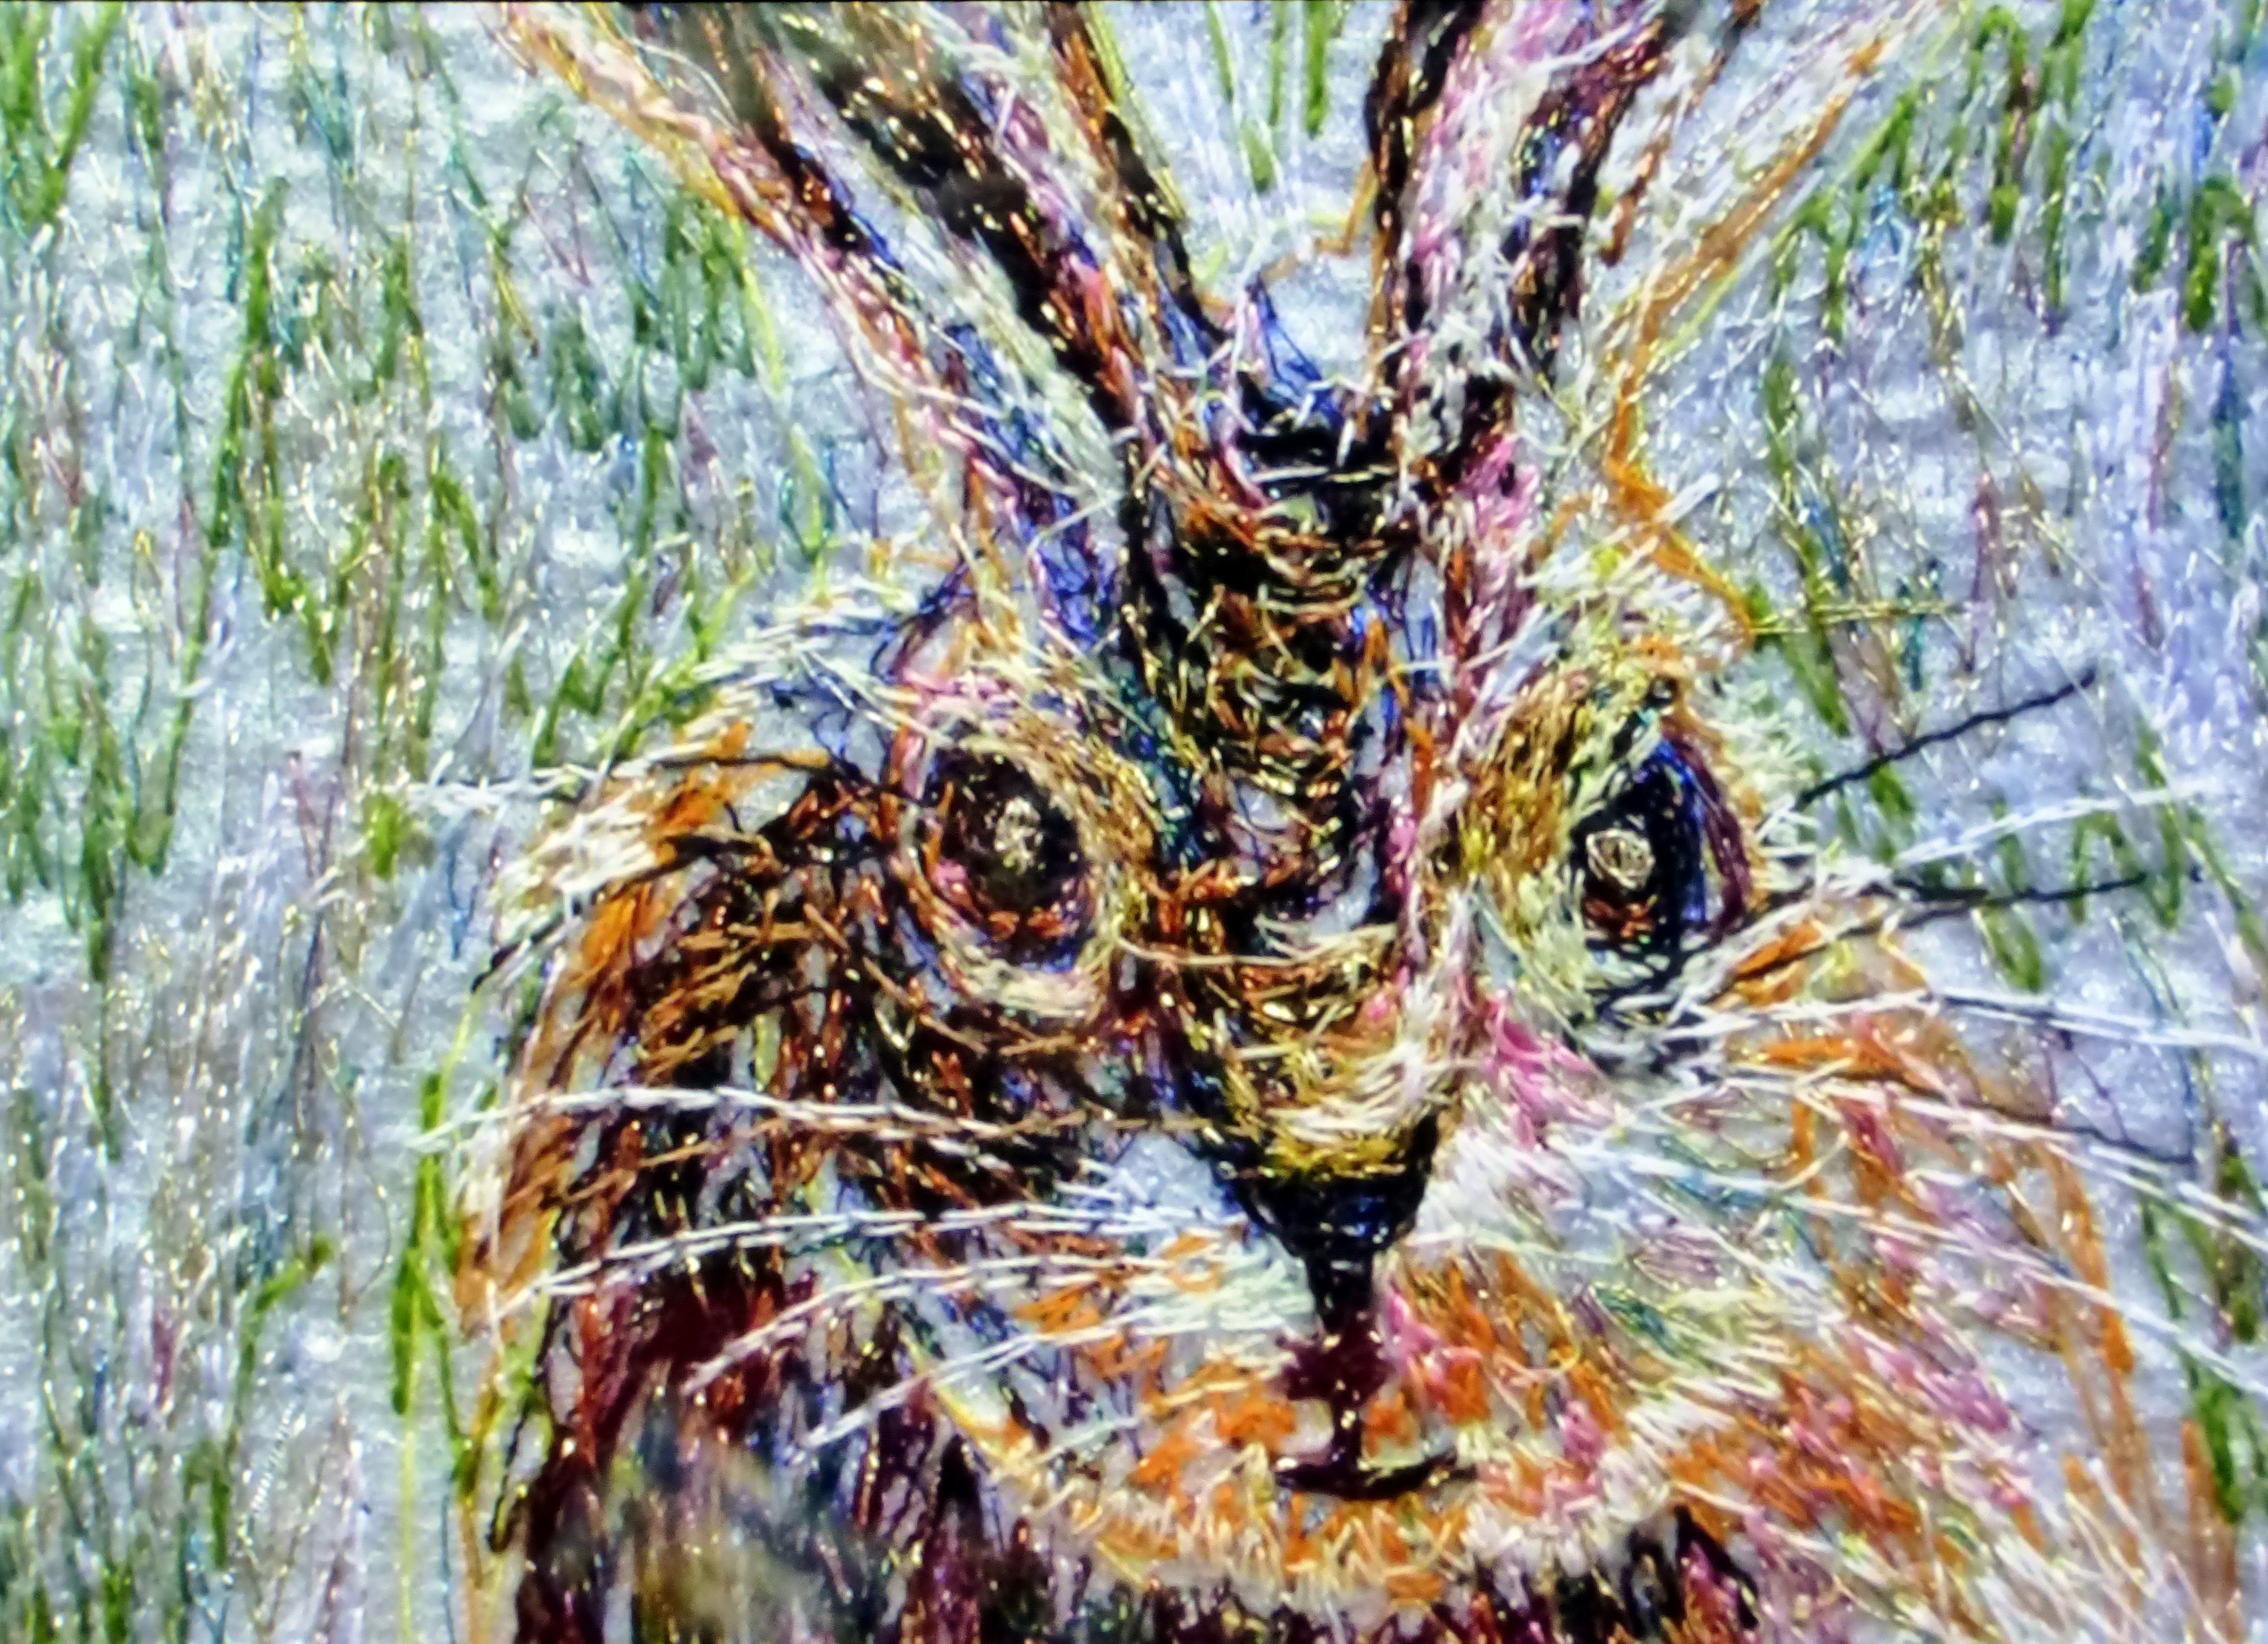 RABBIT embroidery by Richard Box